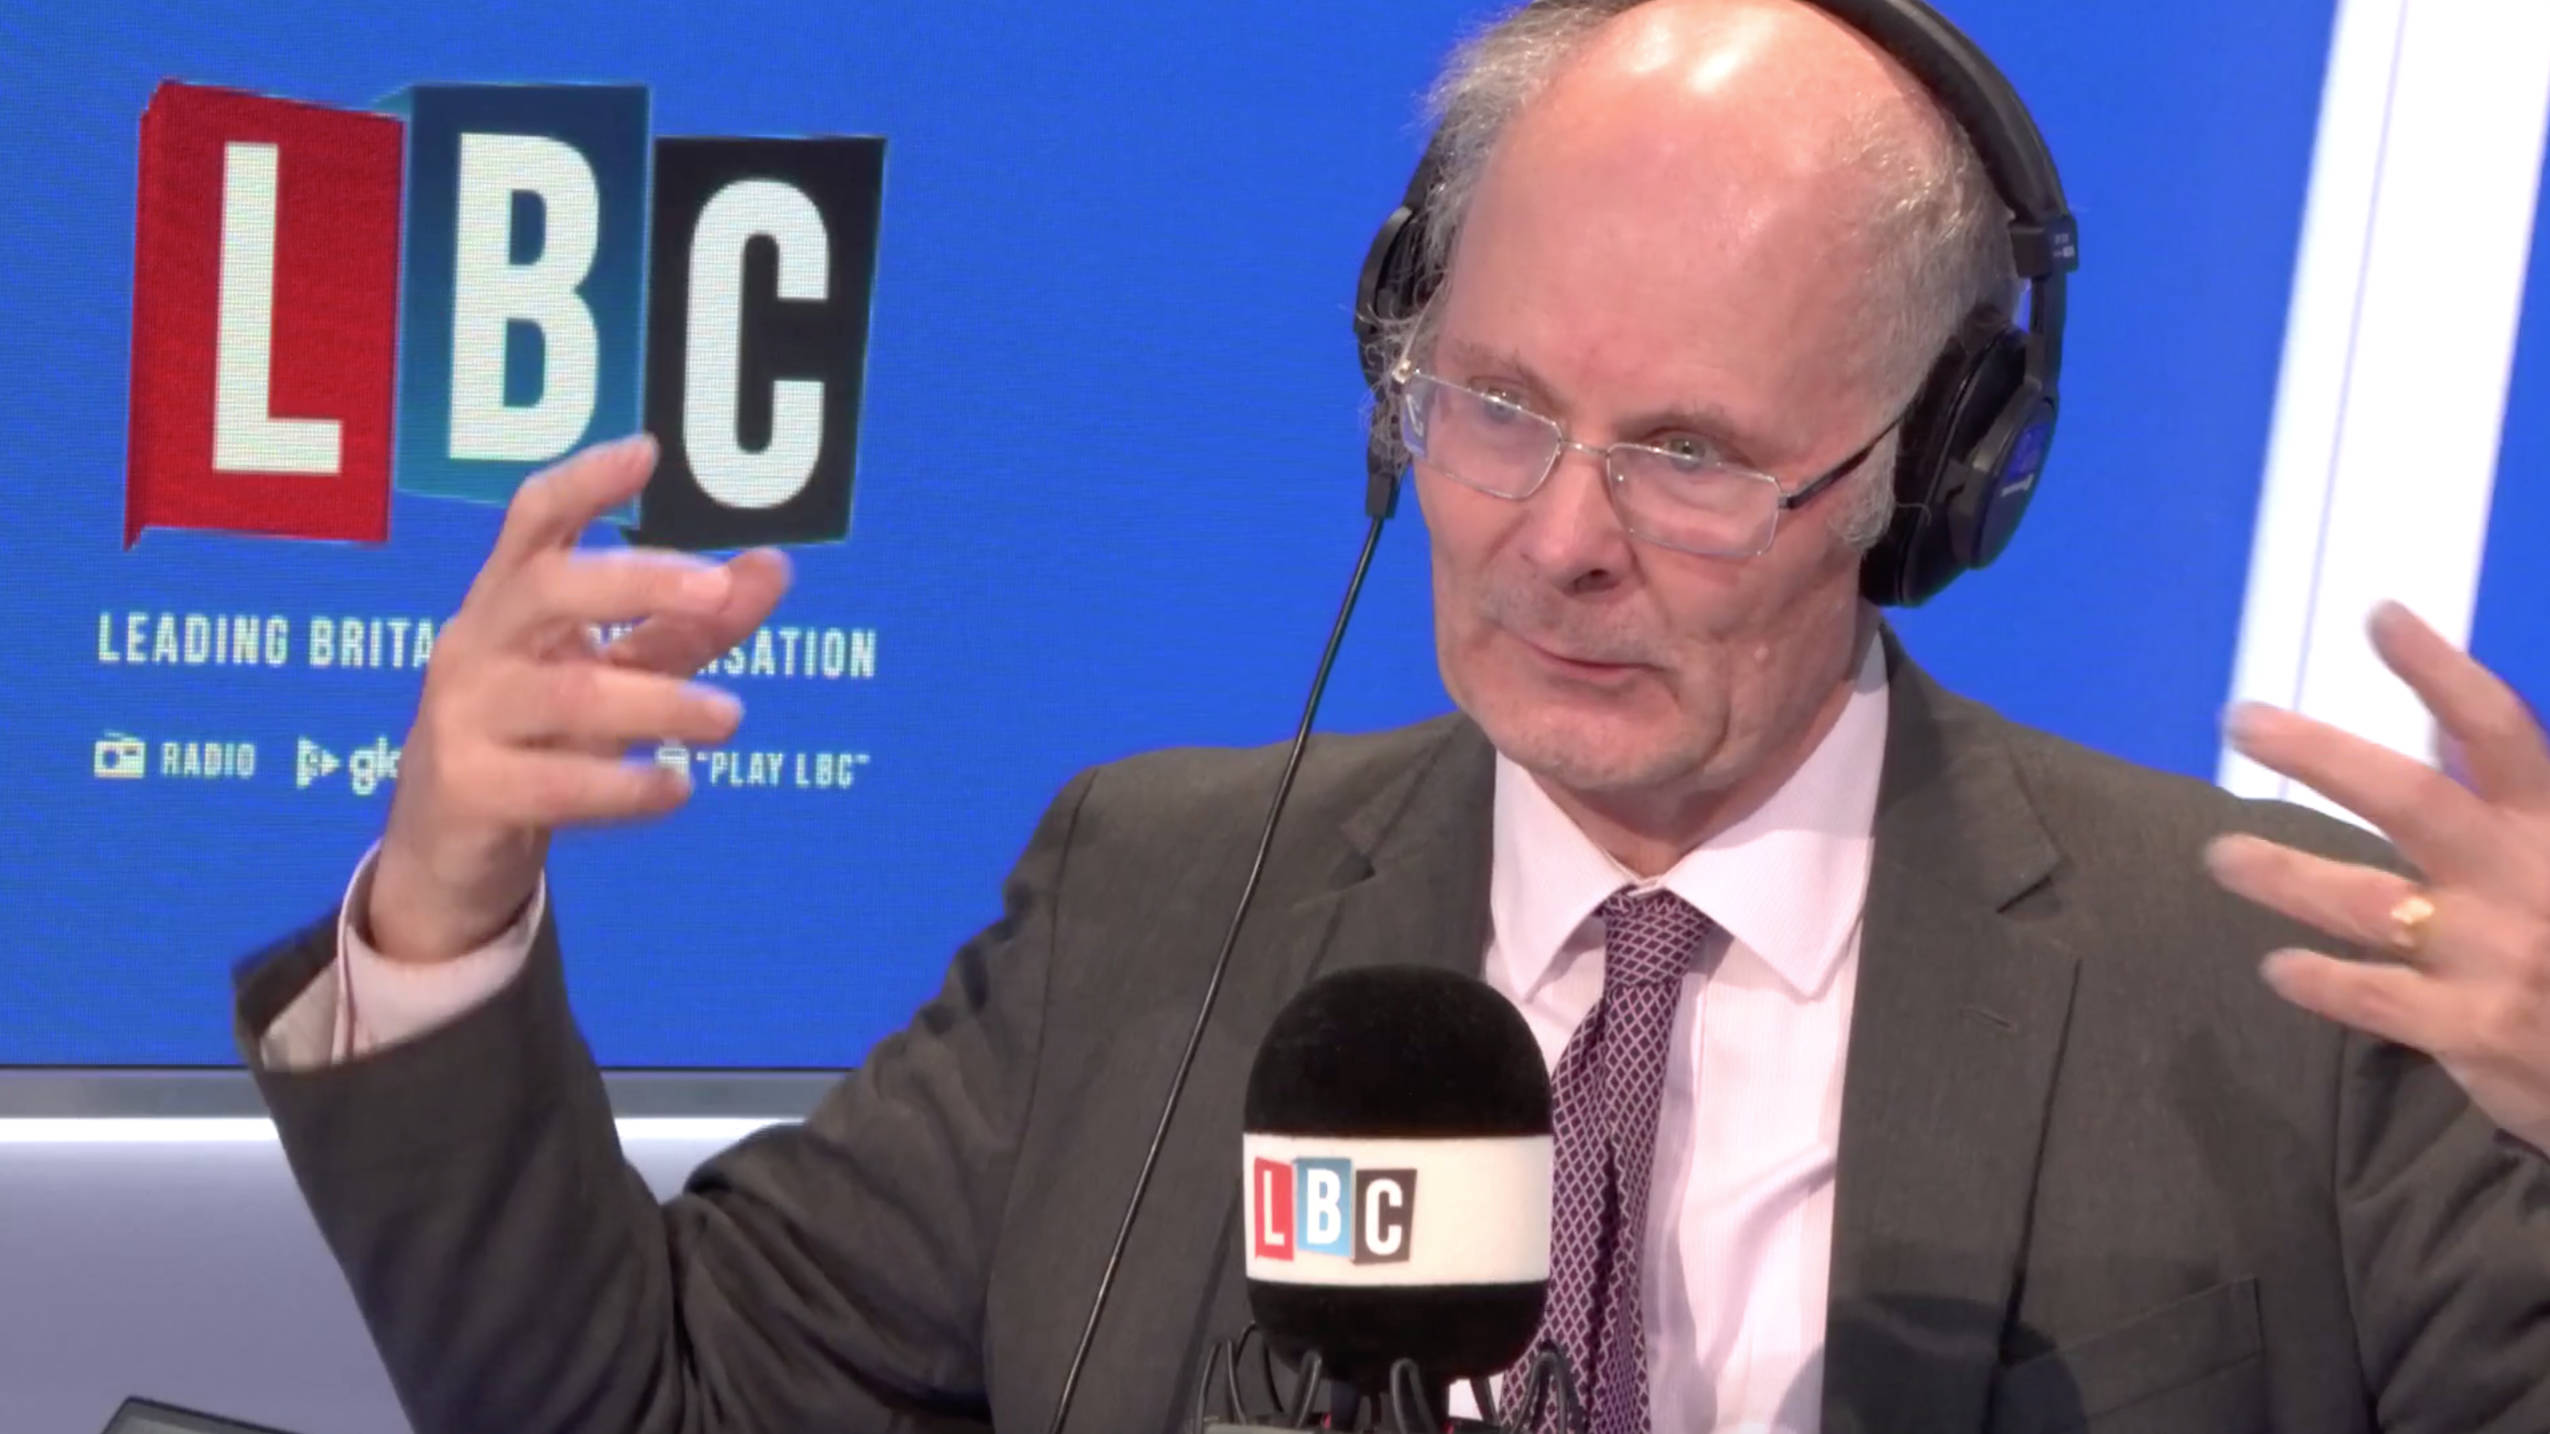 Sir John Curtice's instant reaction to the Johnson v Corbyn election debate